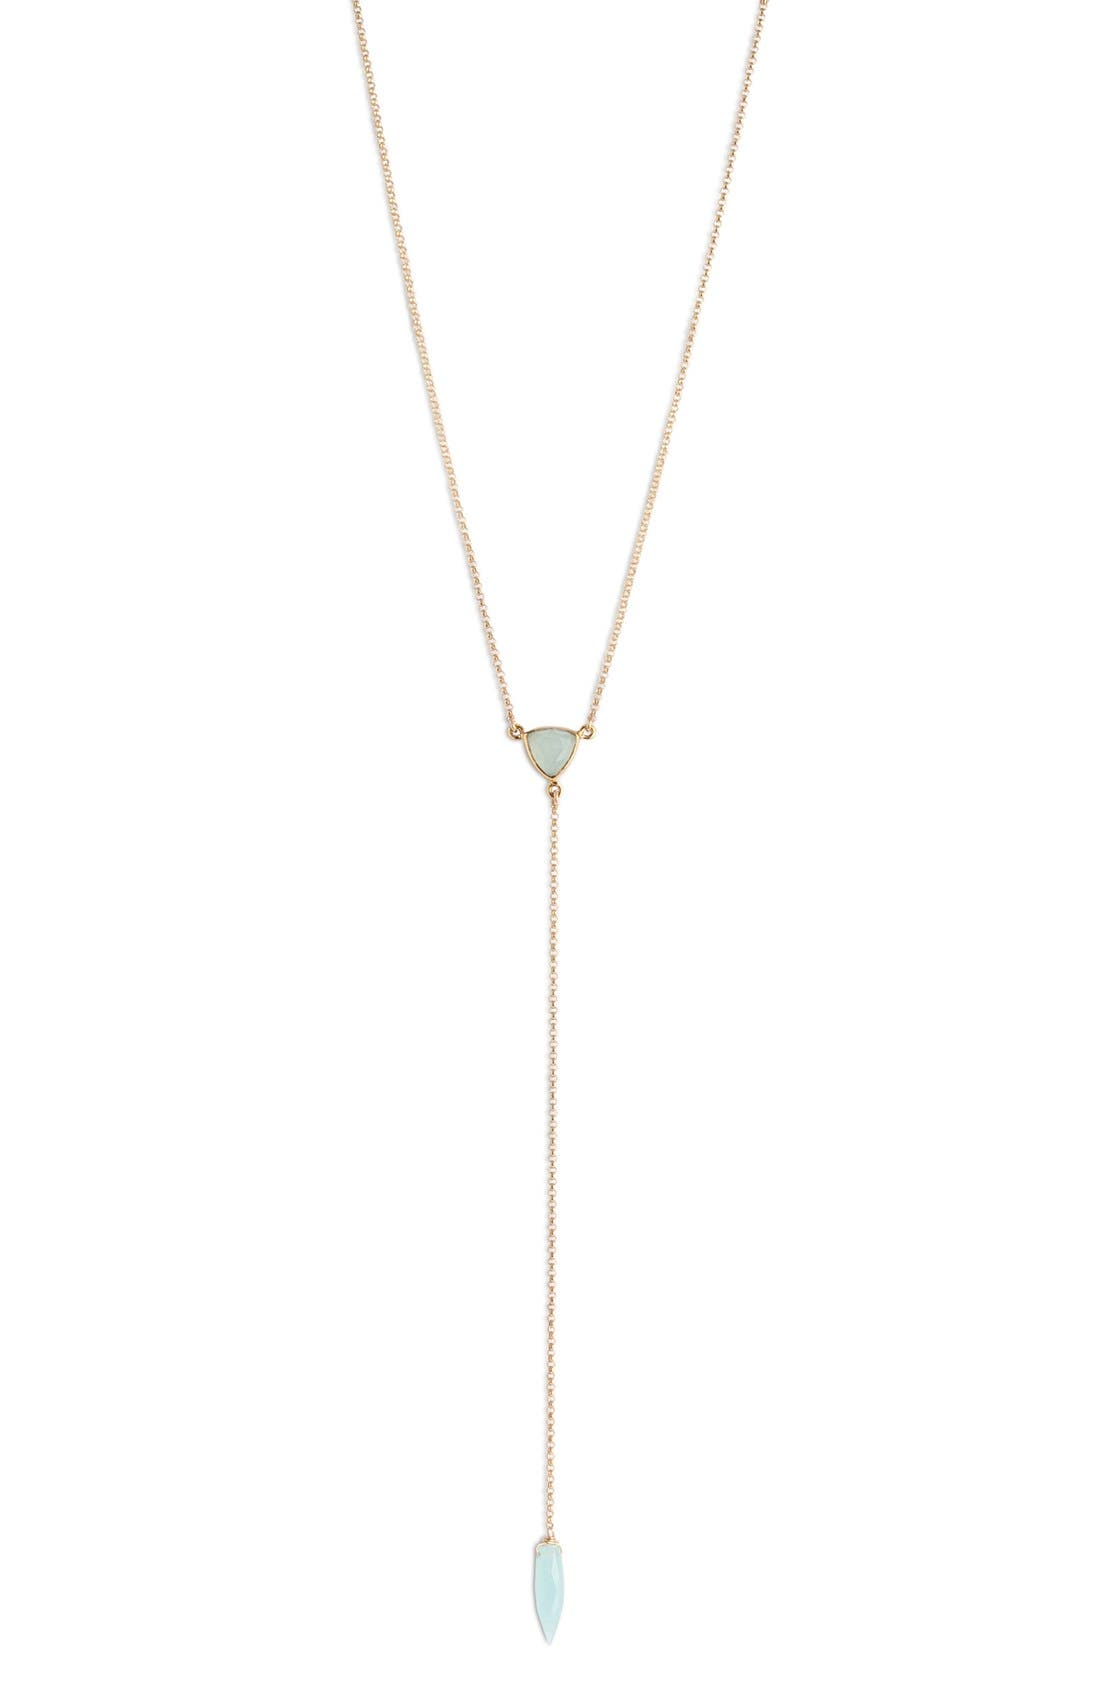 Stone Y-Necklace,                         Main,                         color, Gold/ Aqua Chalcedony